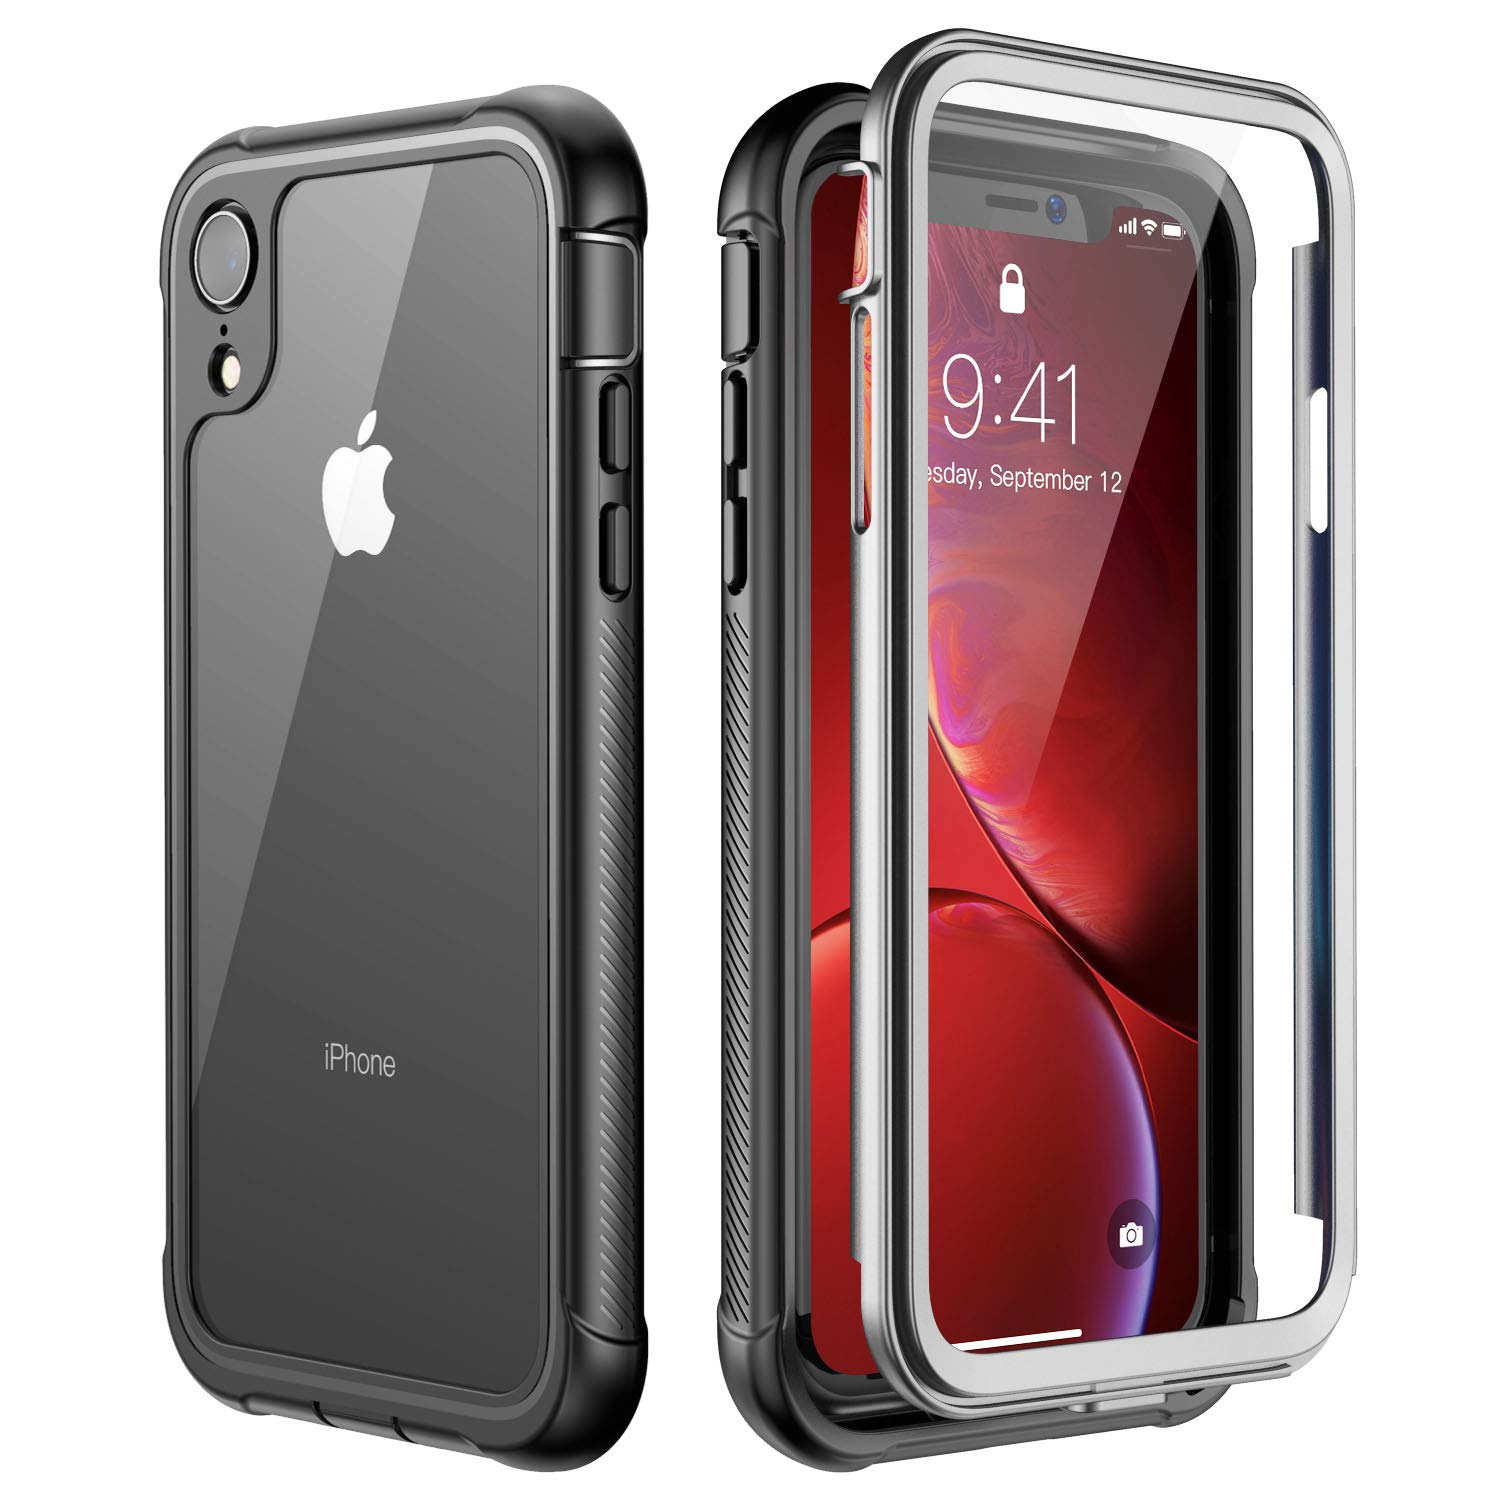 competitive price a6abd 08e94 ATOP iPhone Xr case, Full-Body Protection Rugged Clear Bumper Case with  Built-in Screen Protector,Heavy Duty Dropproof Shockproof Case for iPhone  Xr ...